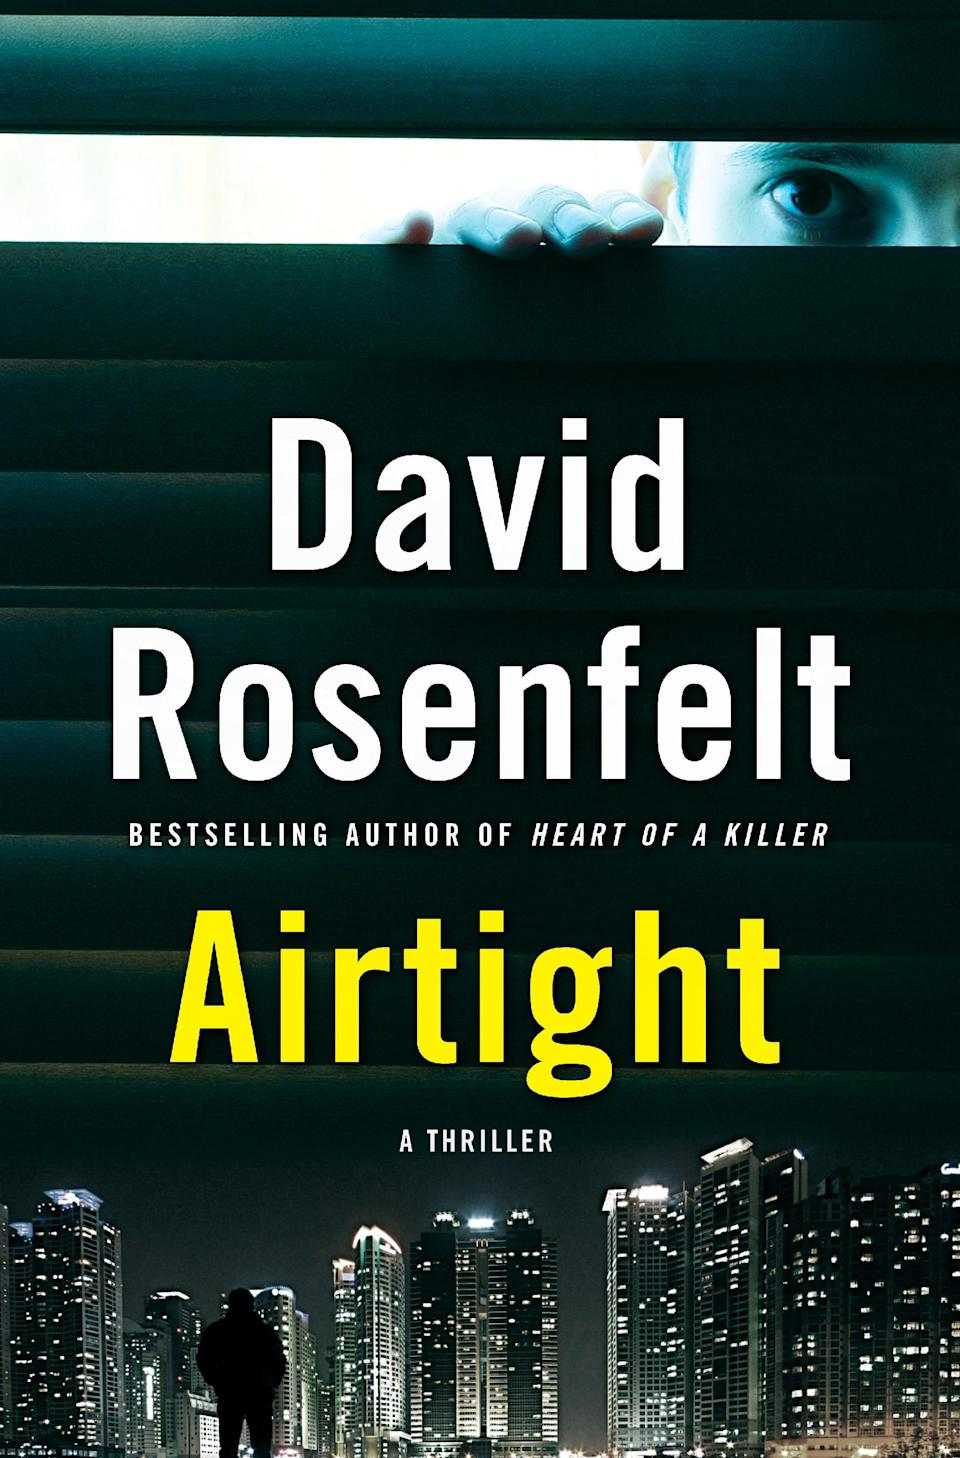 "This publicity photo provided by Minotaur Books shows the cover of author David Rosenfelt's book, ""Airtight,"" published by Minotaur Books. (AP Photo/Minotaur Books)"